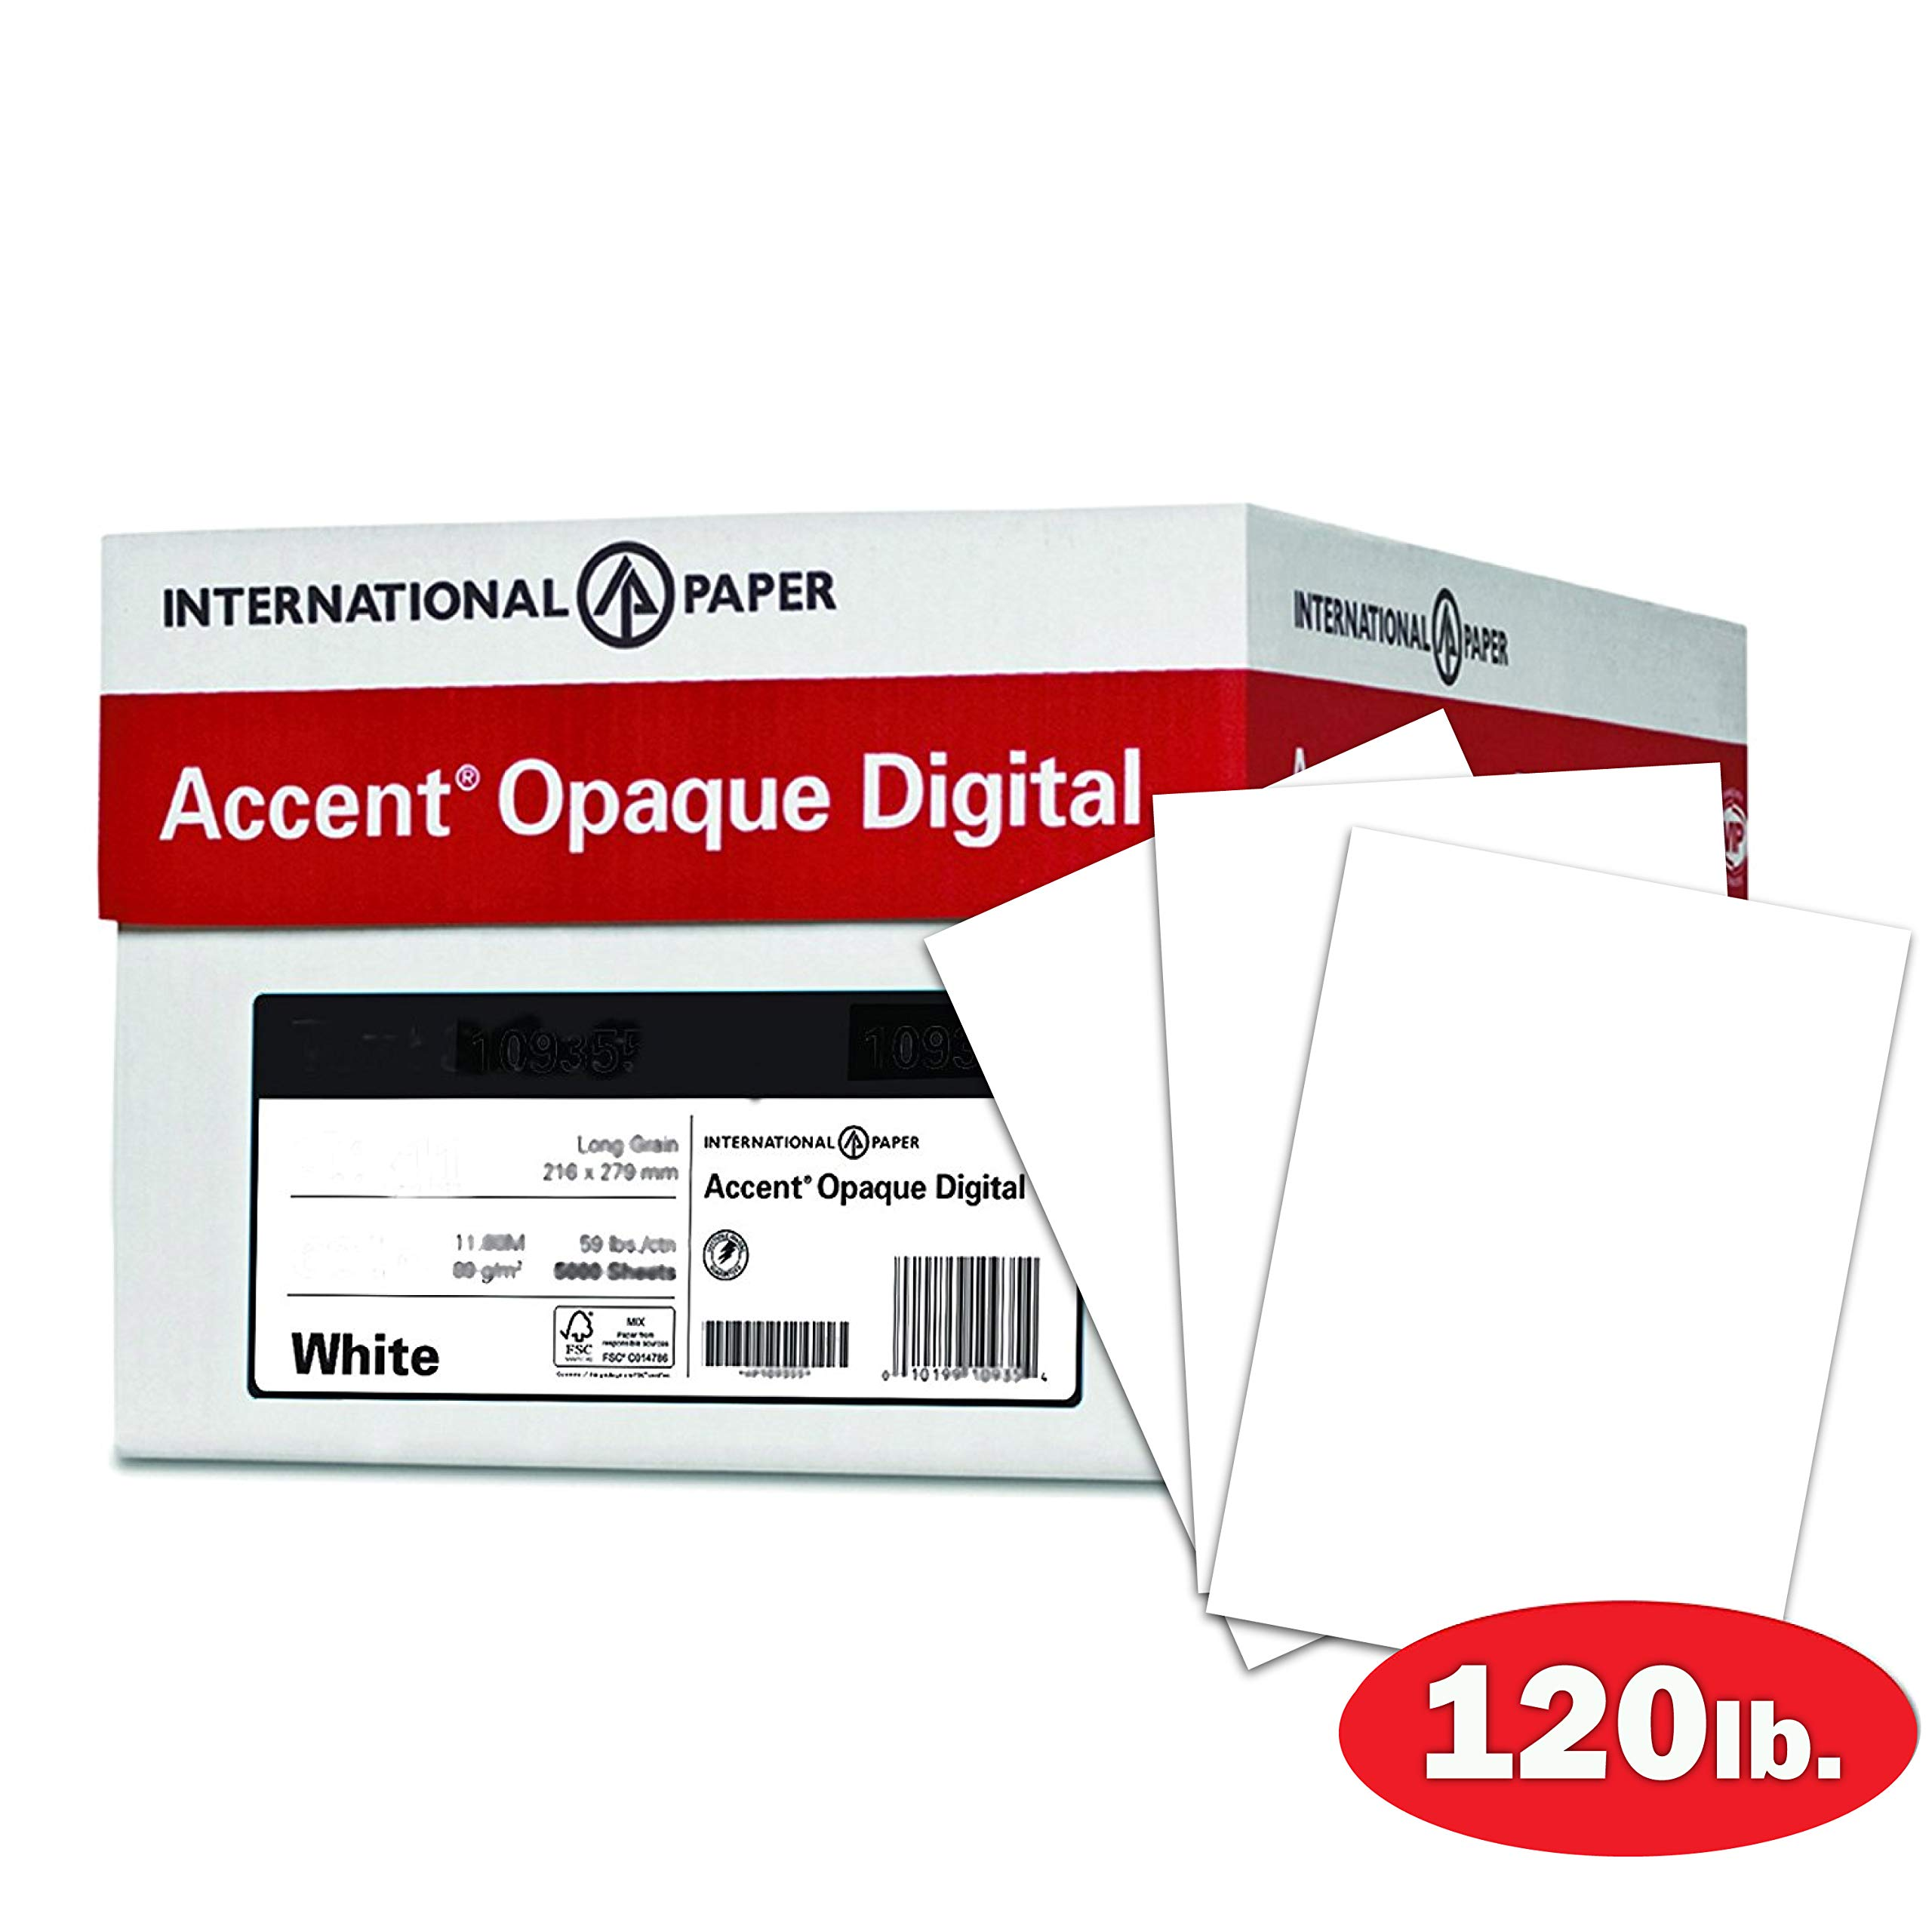 Accent Opaque Thick Cardstock Paper, White Paper, 120lb Cover, 325 gsm, 18x12, 97 Bright, 4 Reams / 500 Sheets - Smooth, Heavy Card Stock (189030C) by Accent